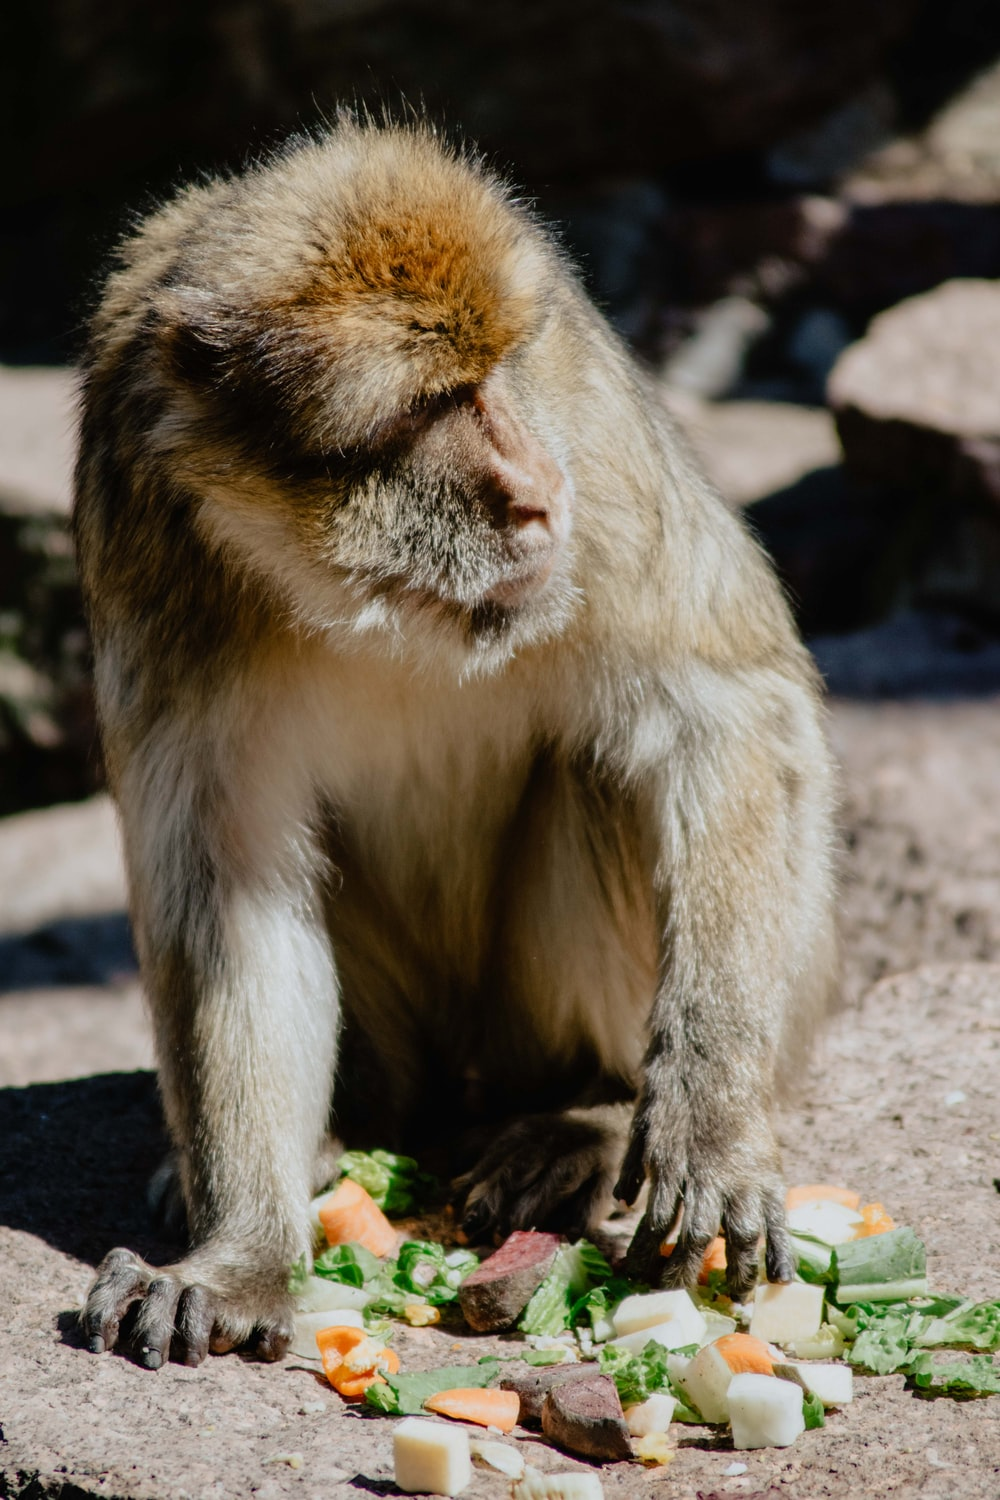 brown monkey sitting on brown wooden surface during daytime